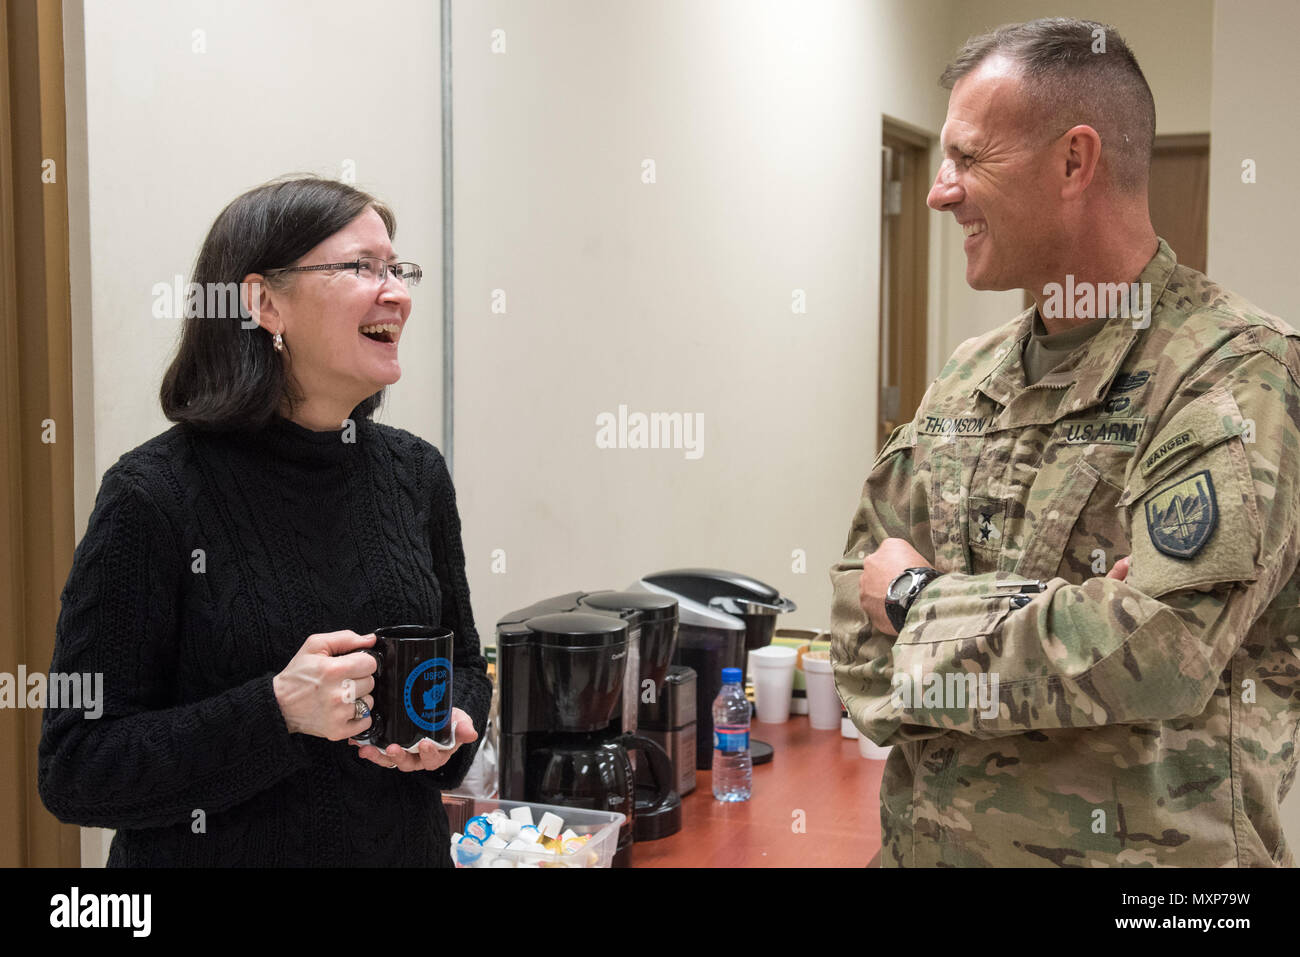 Mrs. Ricki Selva, wife of U.S. Air Force Gen. Paul J. Selva, vice chairman of the Joint Chiefs of Staff, speaks with U.S. Army Maj. Gen. John Thomson, U.S. Forces – Afghanistan deputy commander for support, at Bagram Airfield, Afghanistan, Nov. 24, 2016. Gen. Selva and Mrs. Selva visited troops across Afghanistan to spend Thanksgiving Day with them and thank them for their service. (DoD Photo by U.S. Army Sgt. James K. McCann) Stock Photo